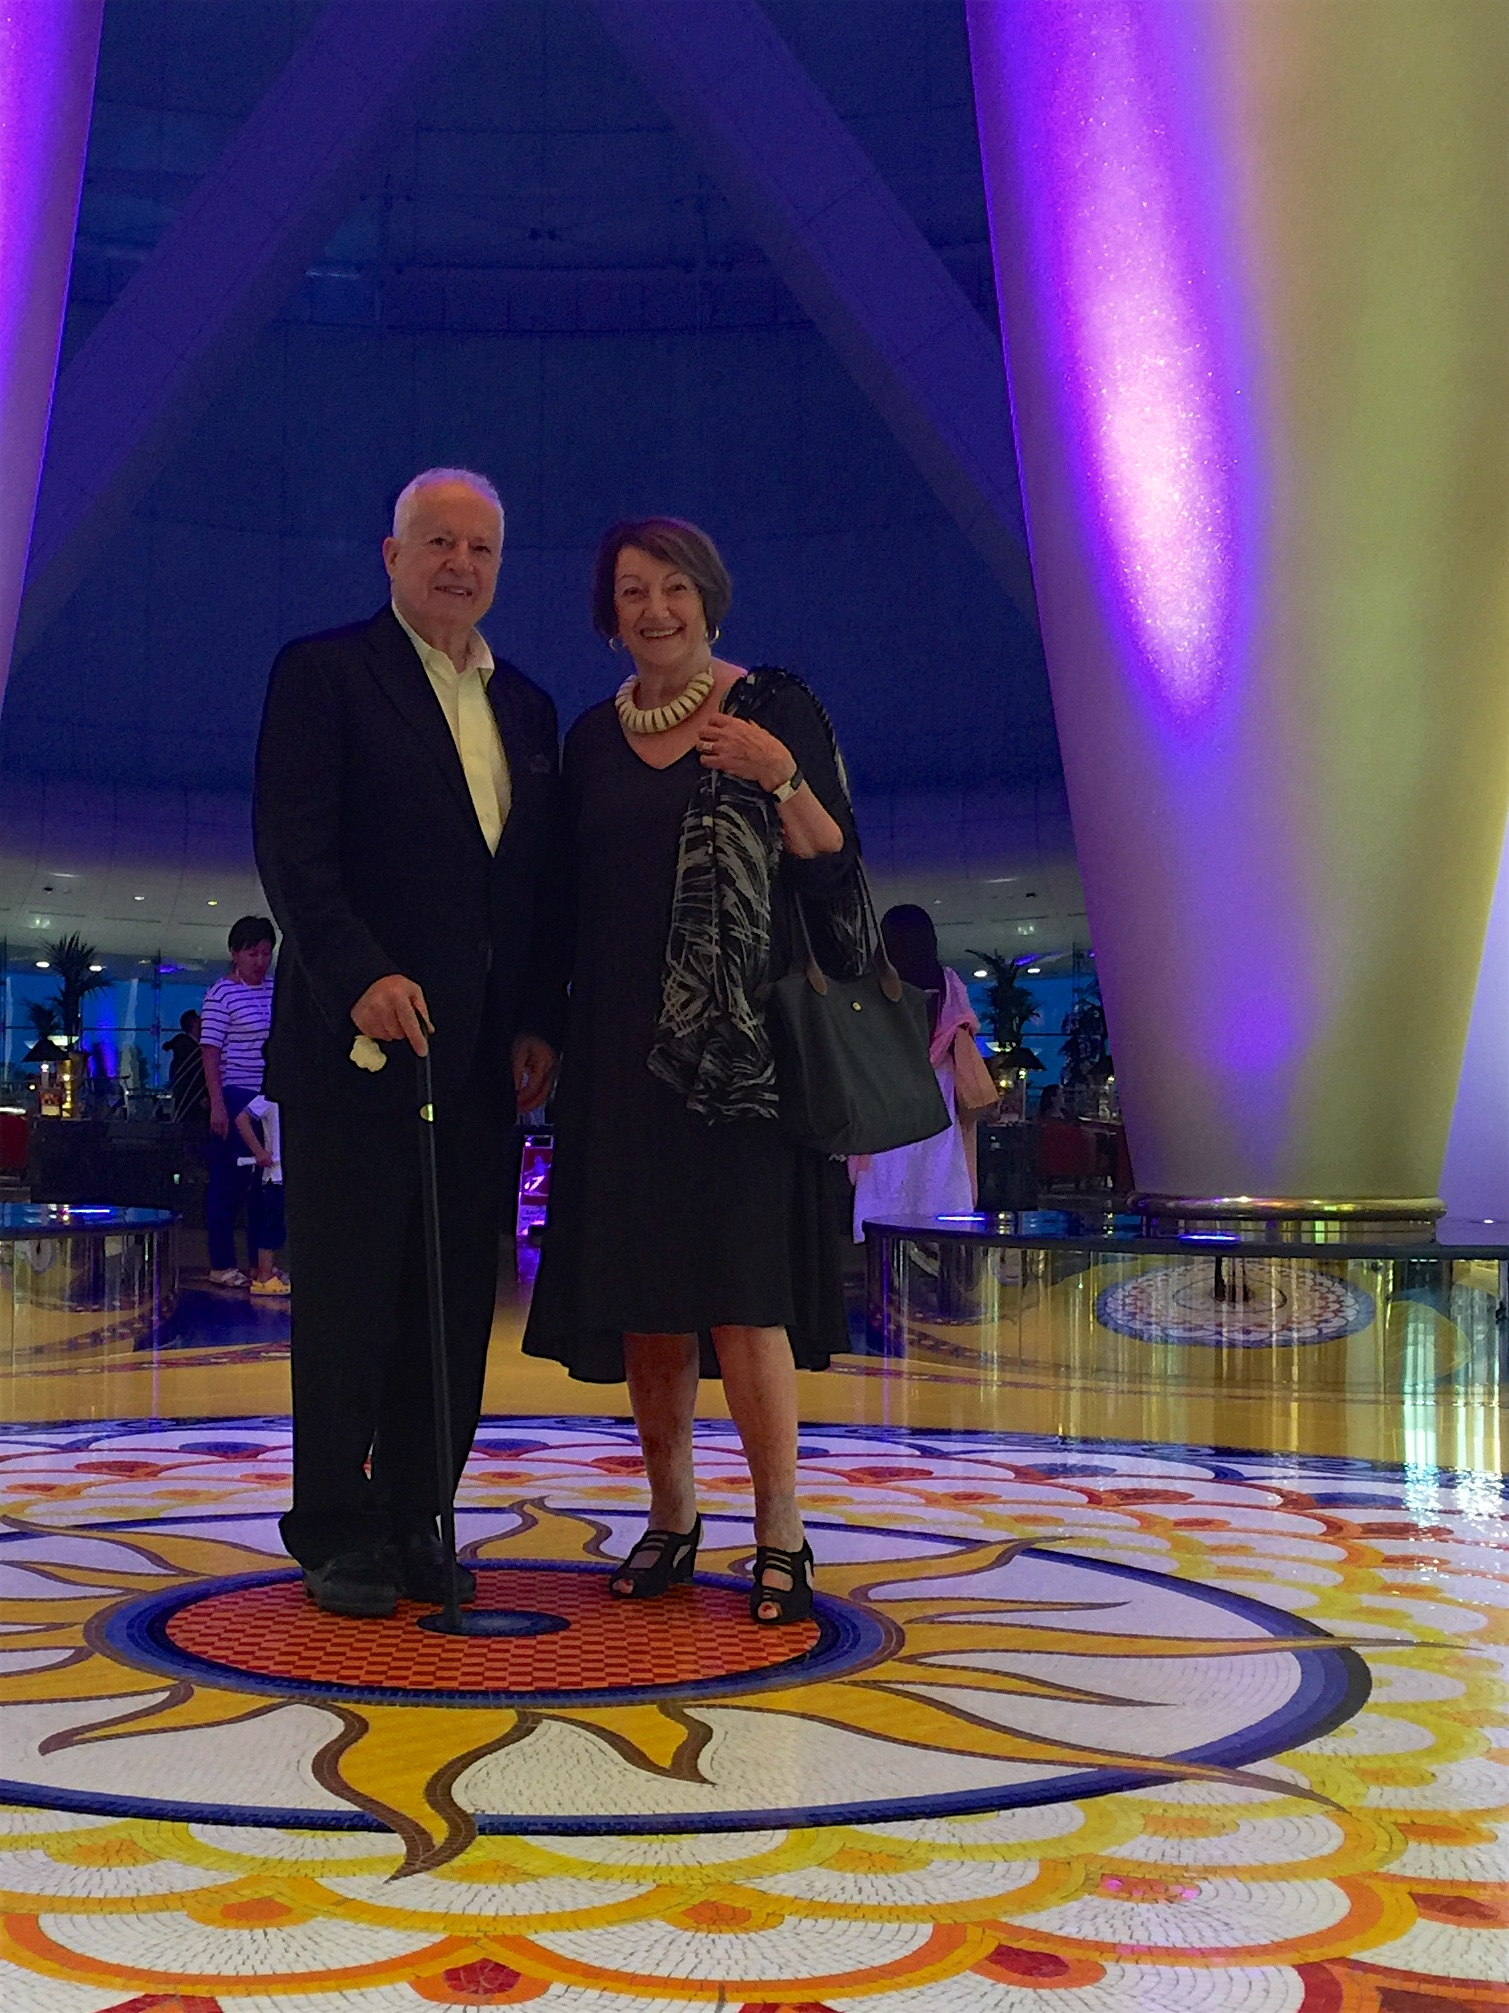 Jim and Pam Turner enjoying the Arabesque design influences in one of the foyers in the Burj. Colours and lighting are definitely Arabian, but would also go over well in Hollywood.